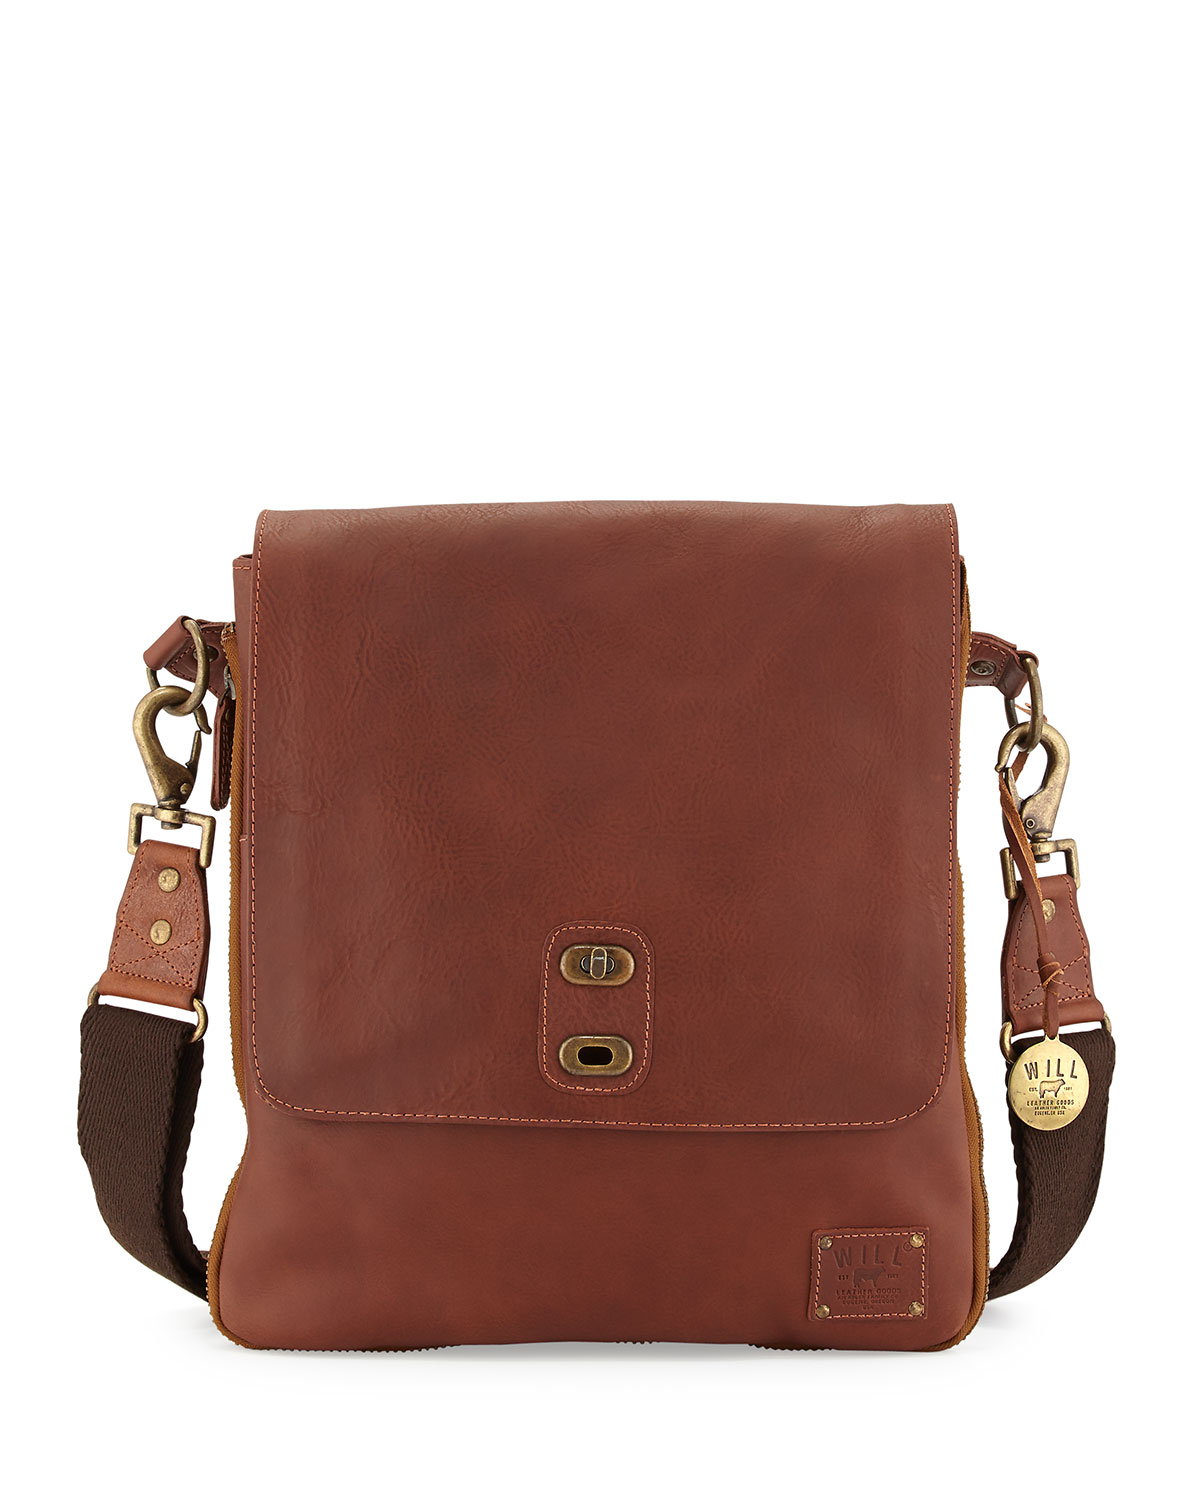 Will Leather Goods Otto Men s Leather Crossbody Satchel Bag 1a4428056